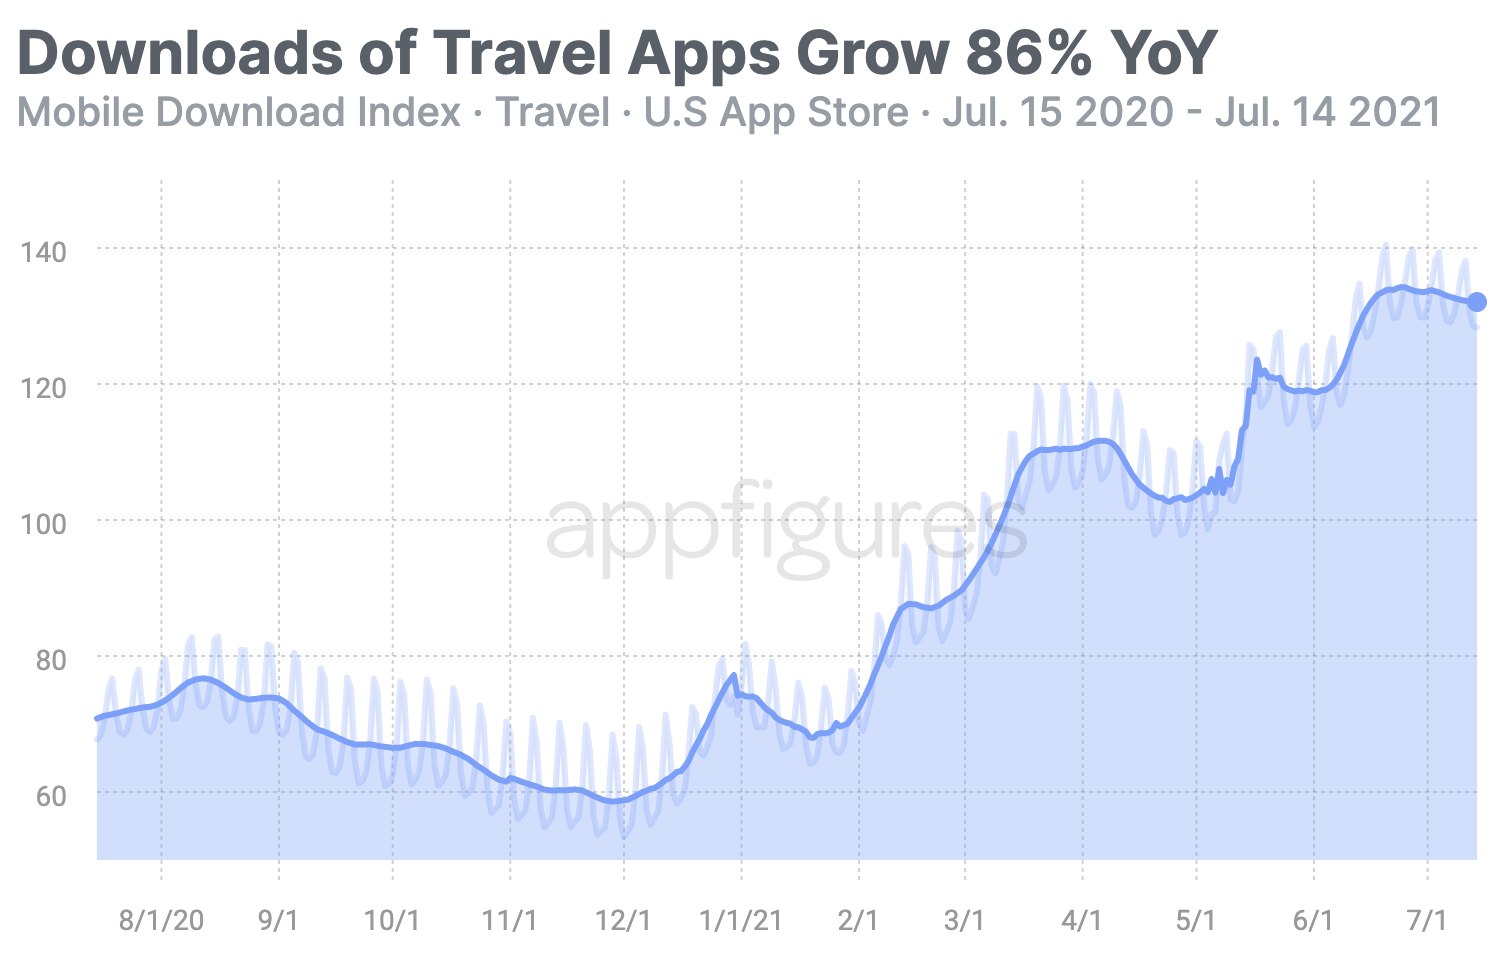 Downloads in the Travel category nearly double year over year according to the Mobile Download Index